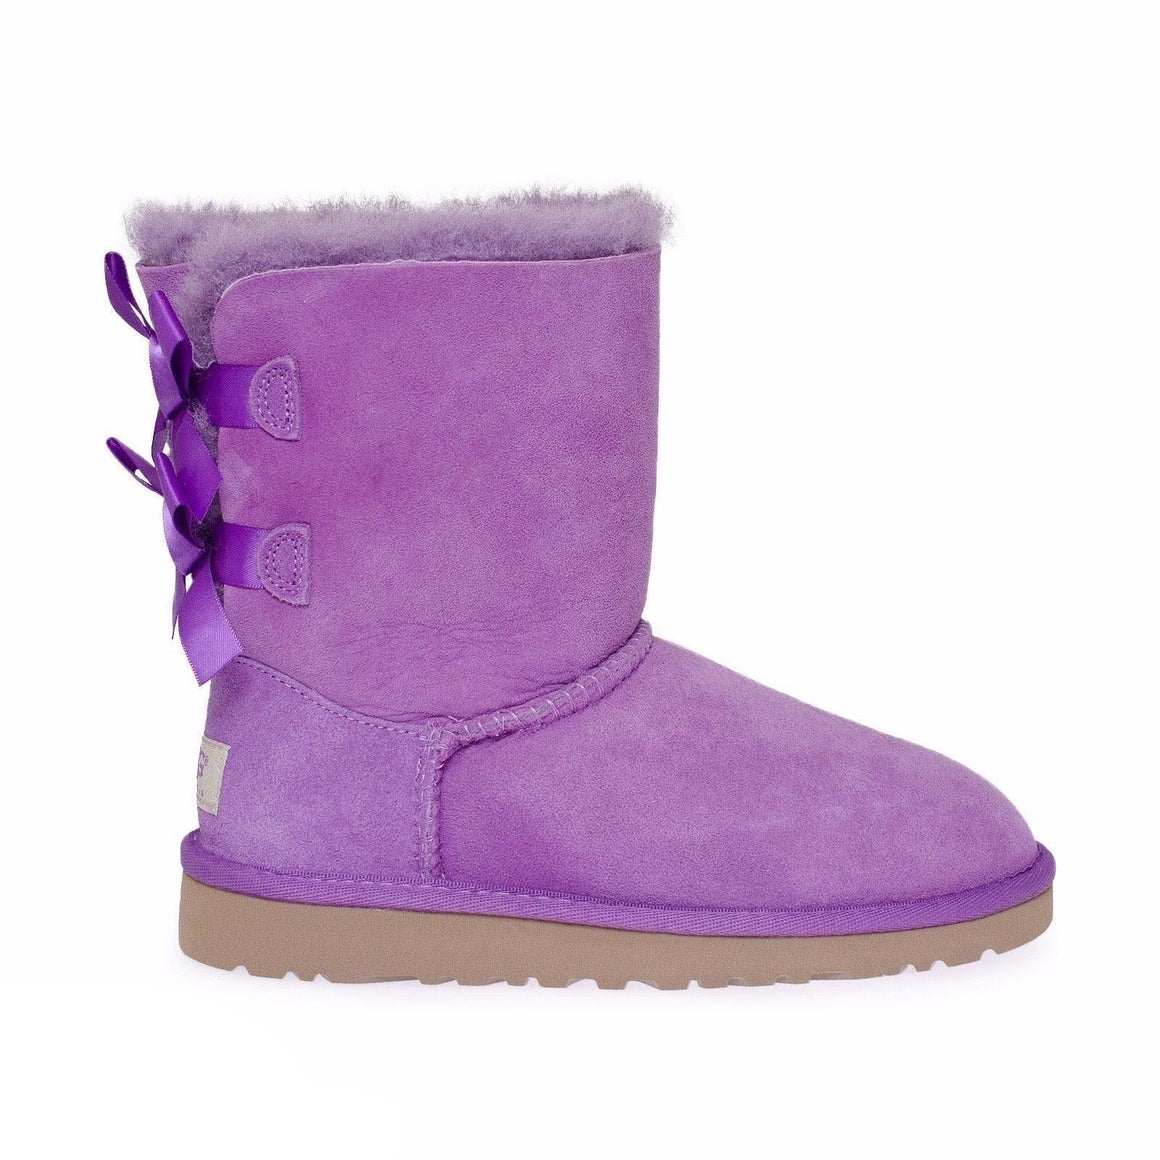 UGG Bailey Bow Electric Violet Boots